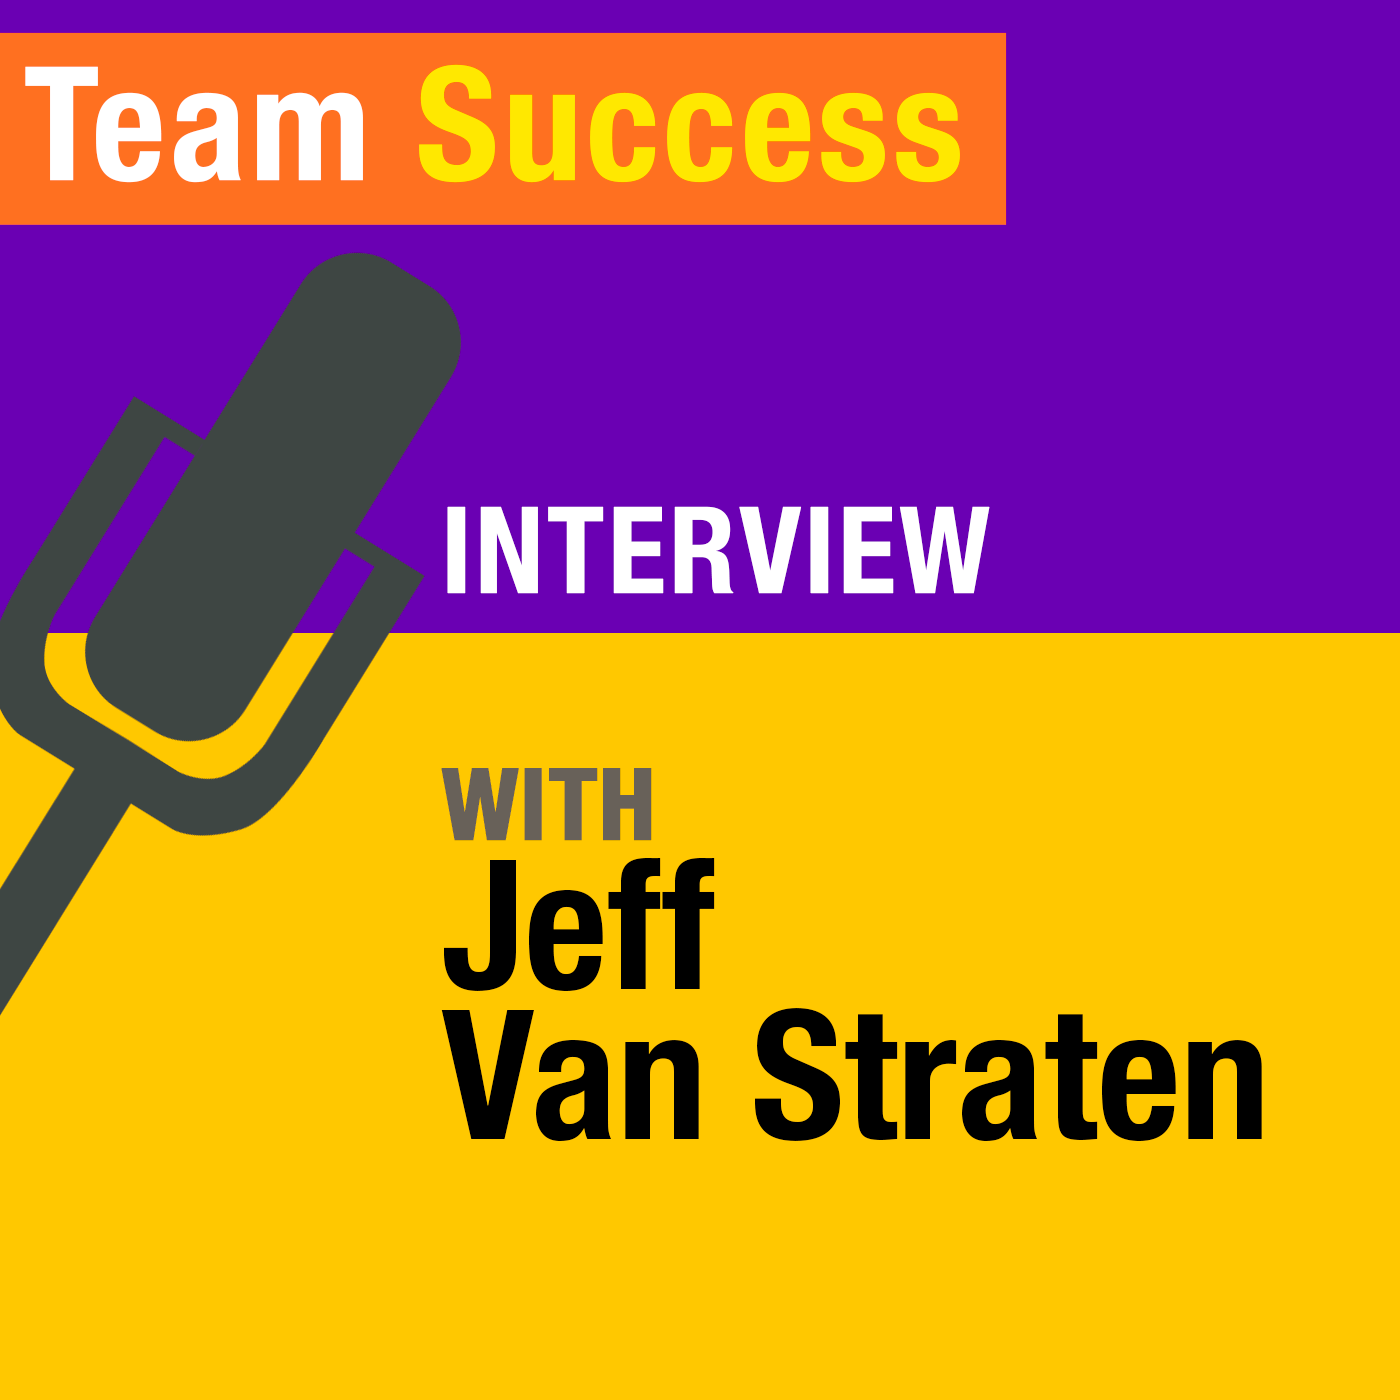 Interview with Jeff Van Straten